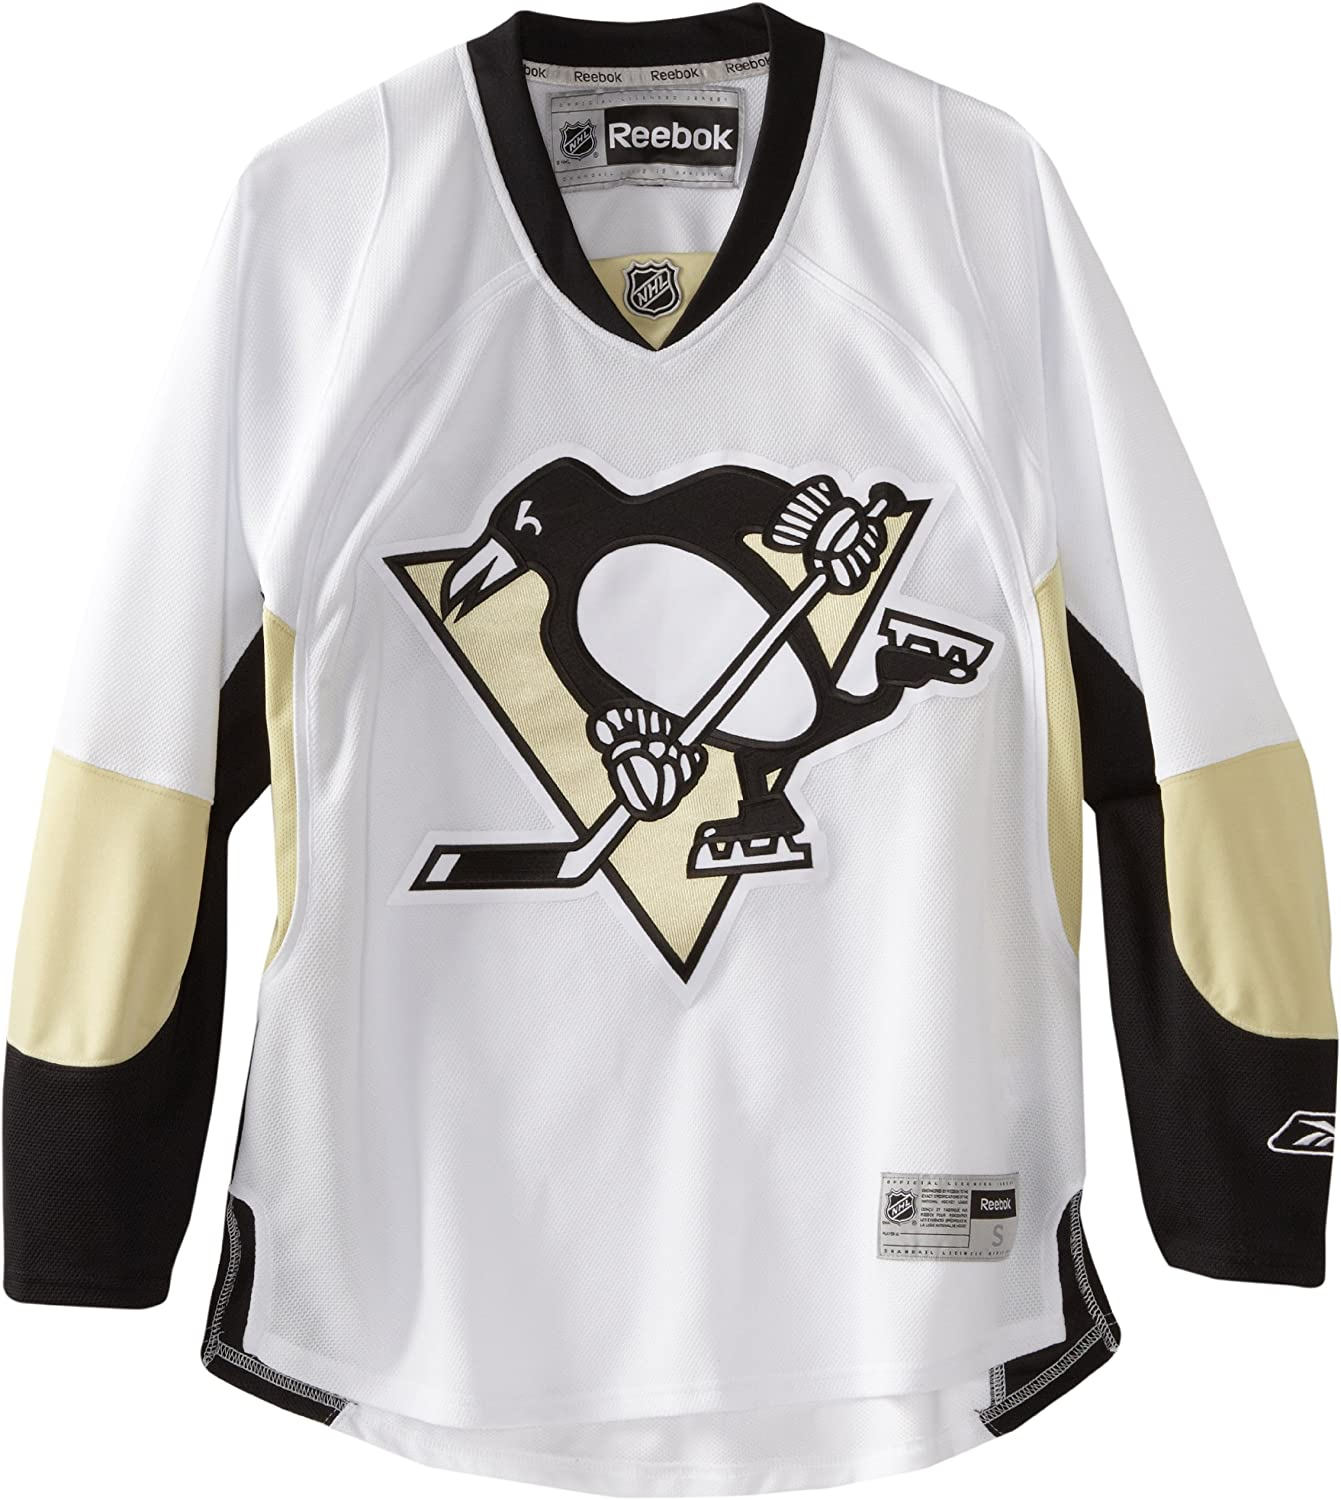 NHL Pittsburgh Penguins Premier Jersey、ブラック/ホワイト/ゴールド  X-Large